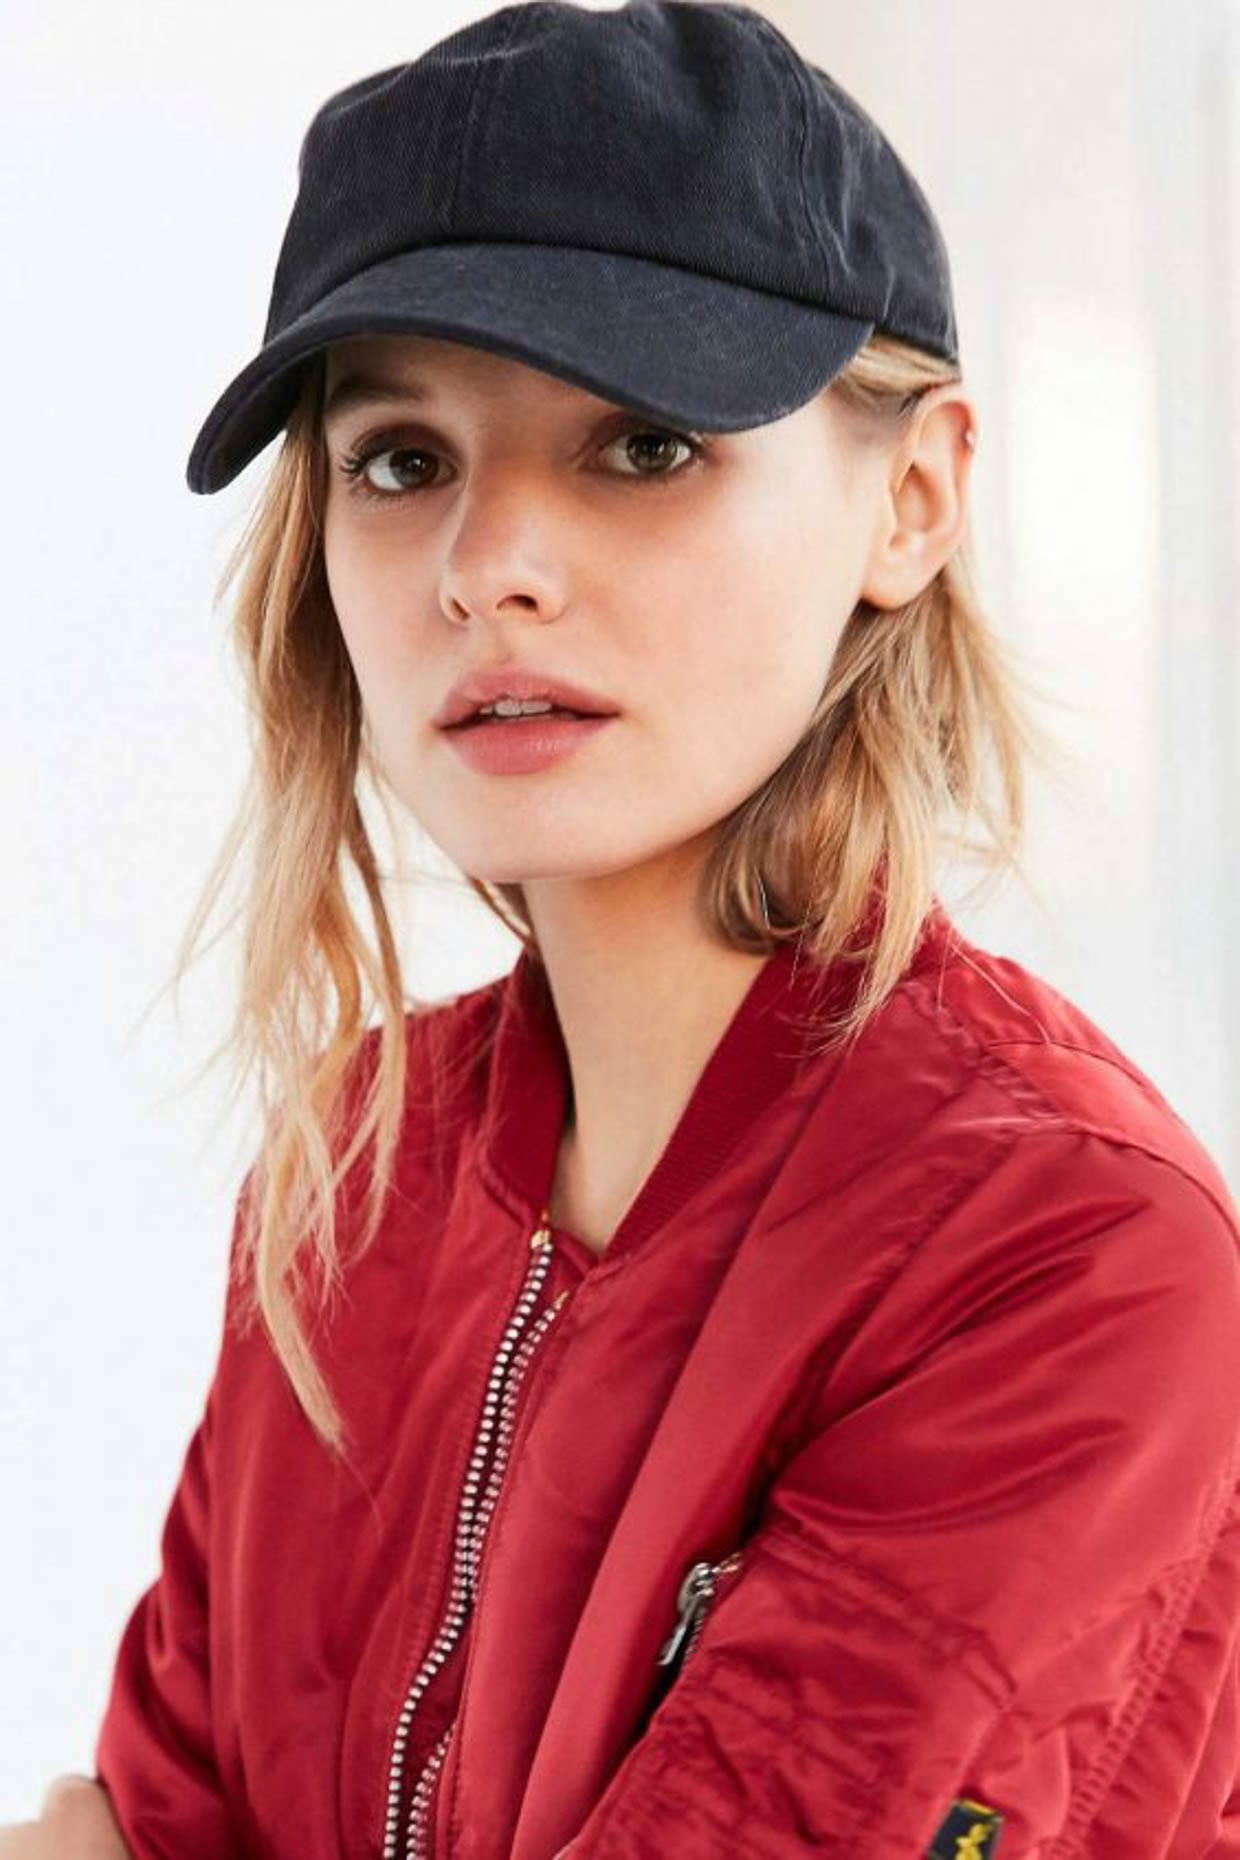 79c6c9a9dd I own one of these Urban Outfitters baseball caps and they are amazing!  Thank goodness these caps are a big trend right now because there s no  better way to ...